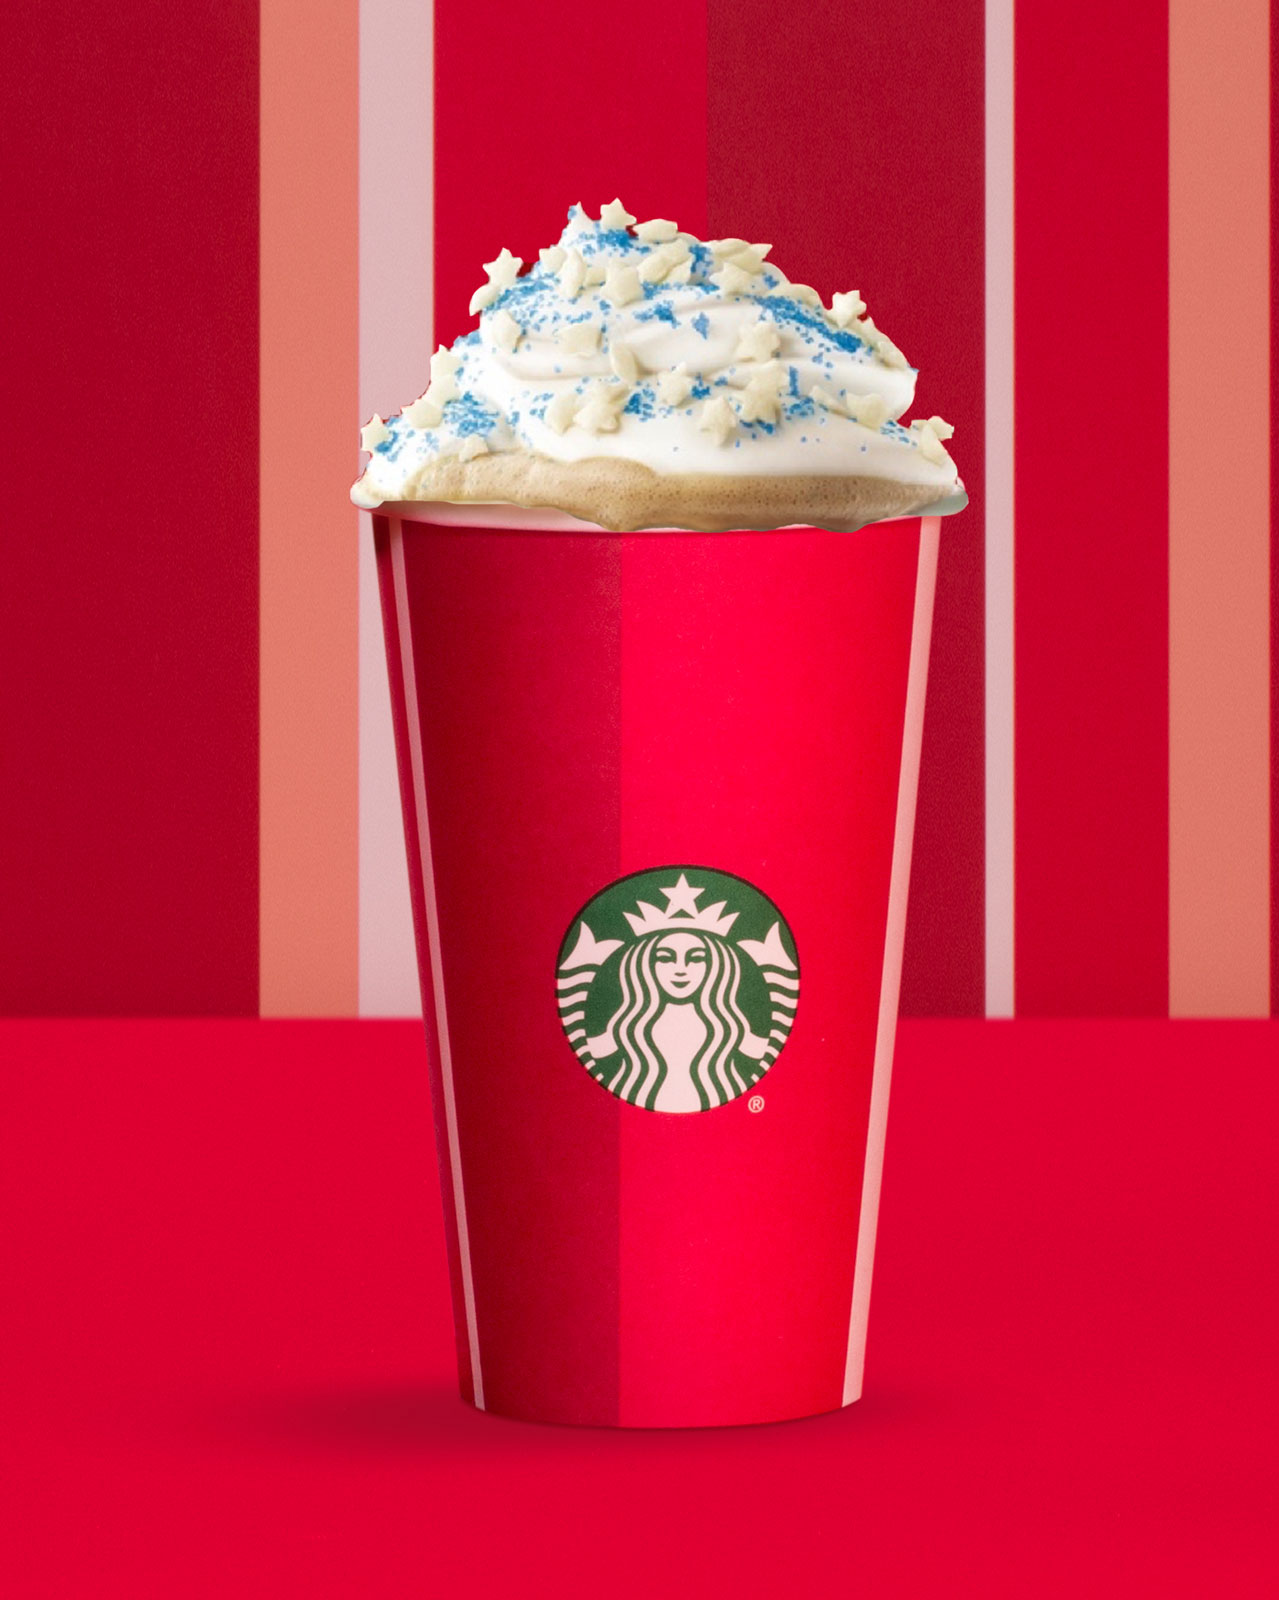 Snowy Cheese Flavored Latte